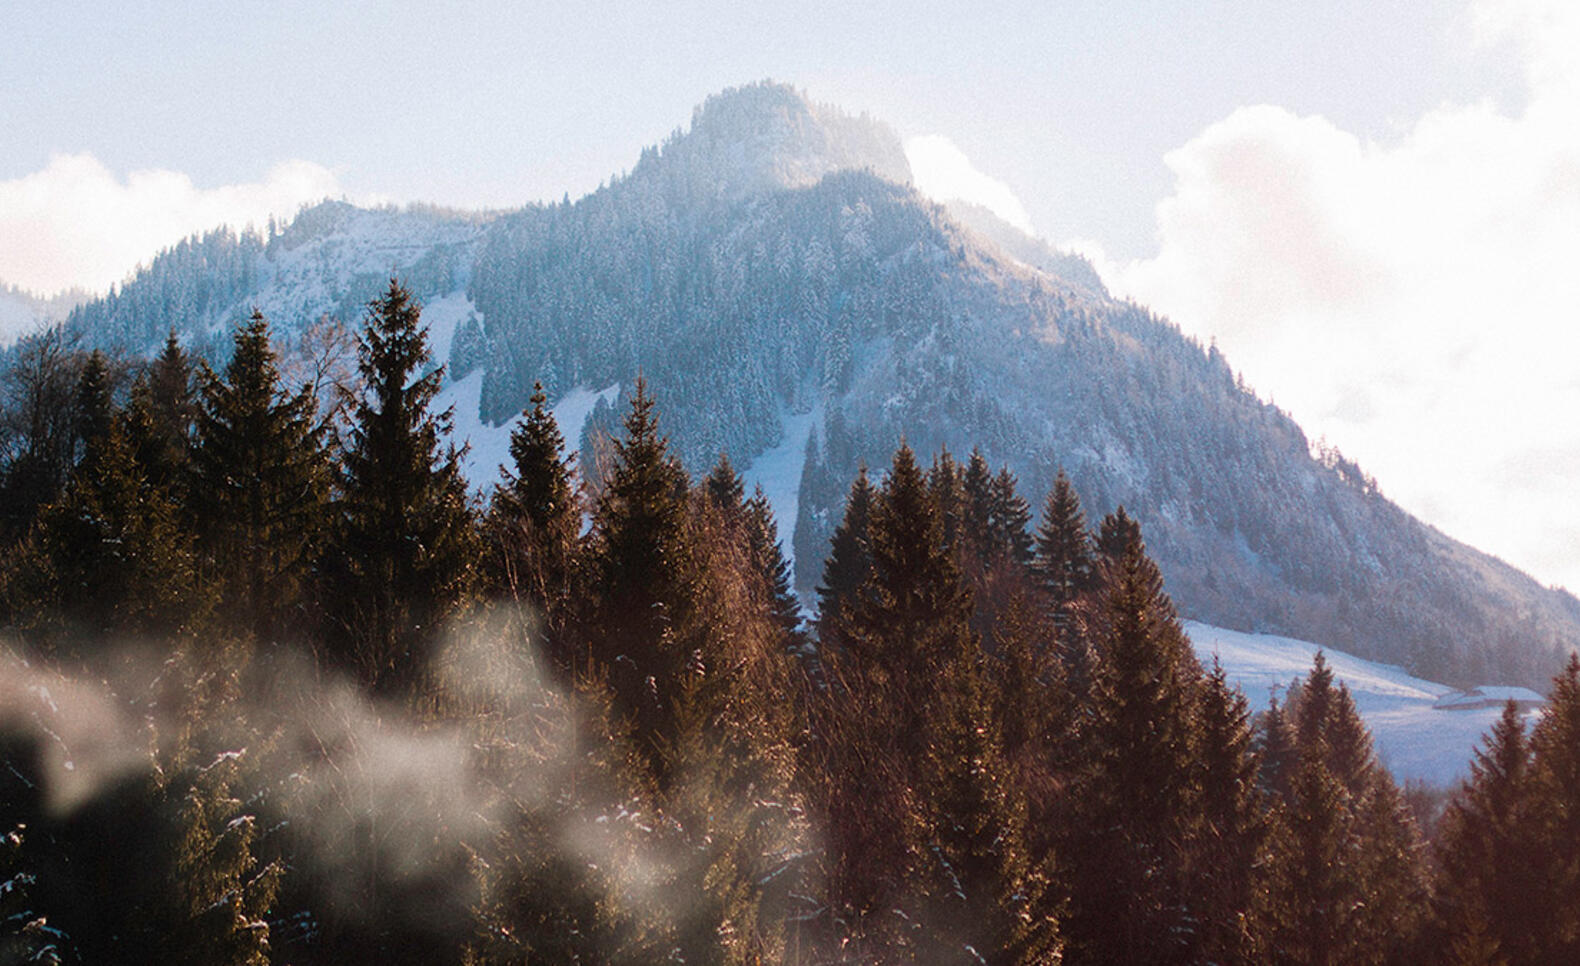 Mountain and forest landscape in Austria